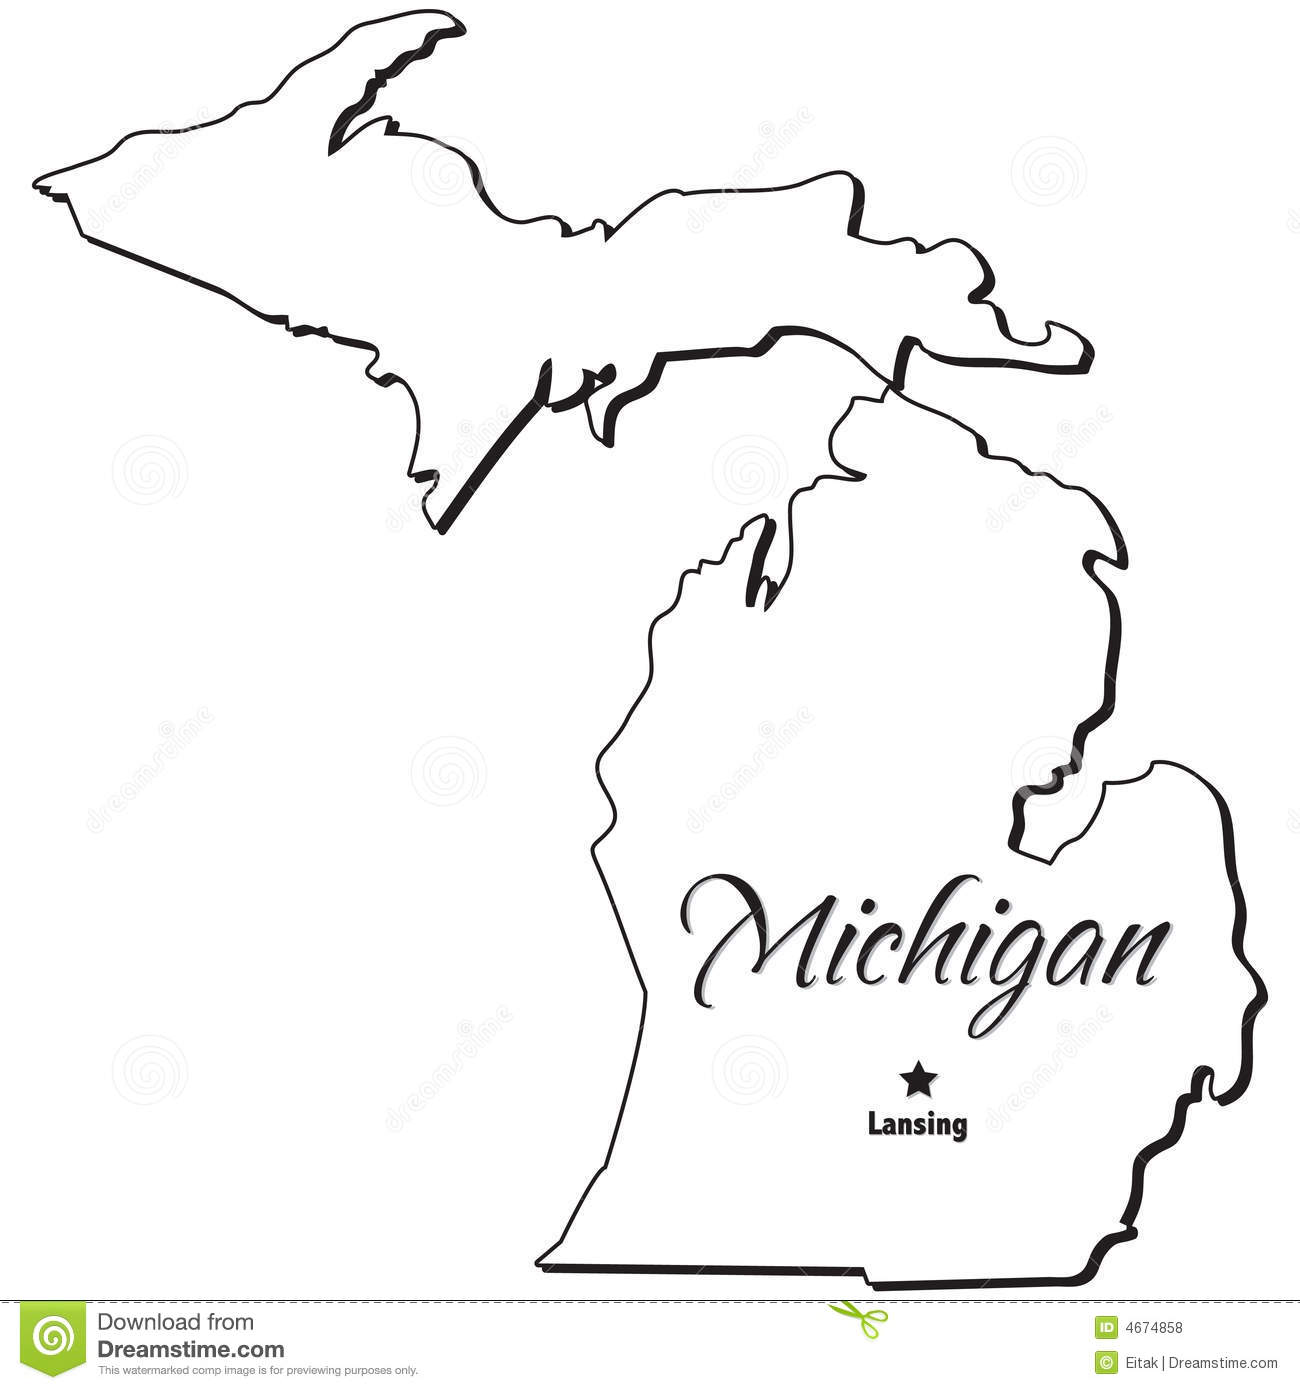 State of Michigan Outline stock vector. Illustration of maps - 4674858